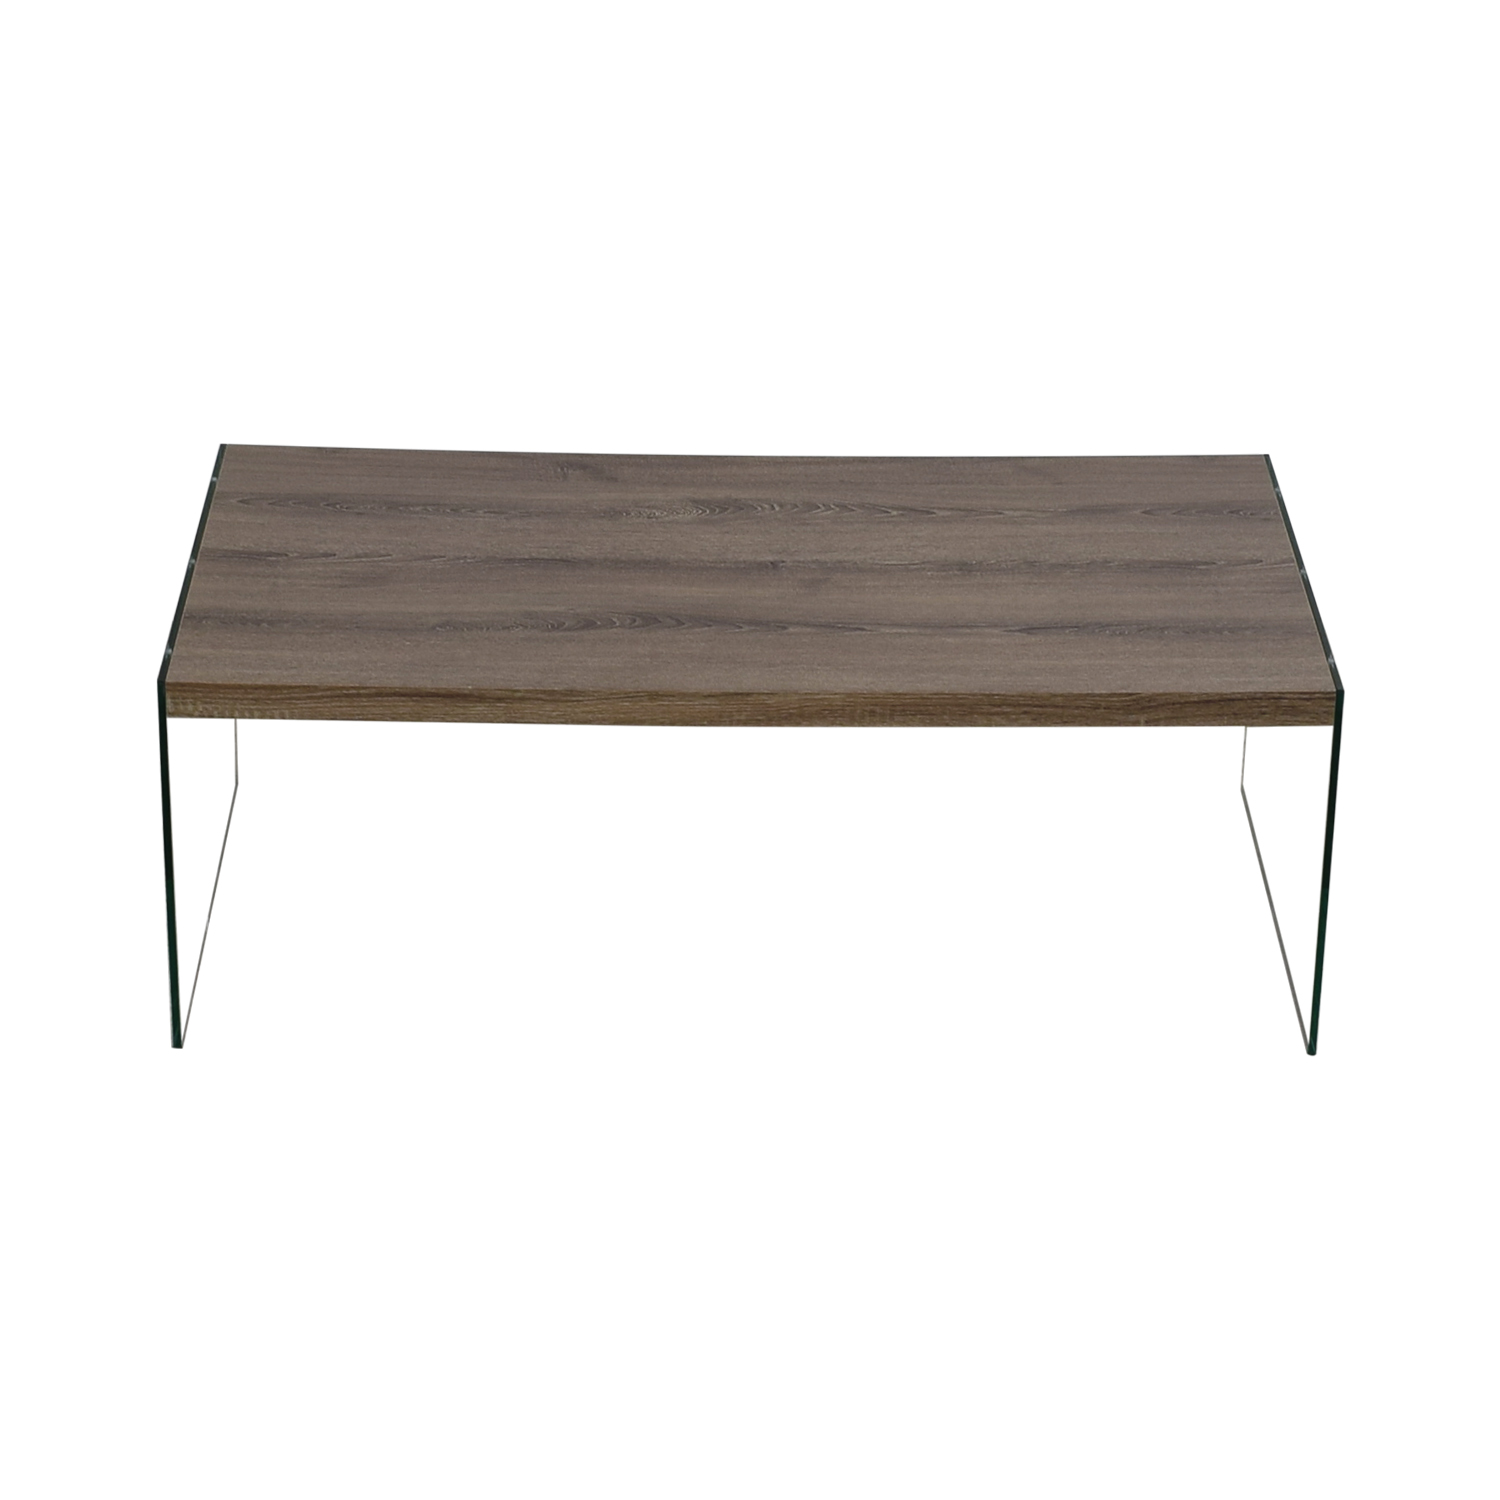 Monarch Specialties Monarch Specialties Grey Rustic Wood and Glass Coffee Table on sale